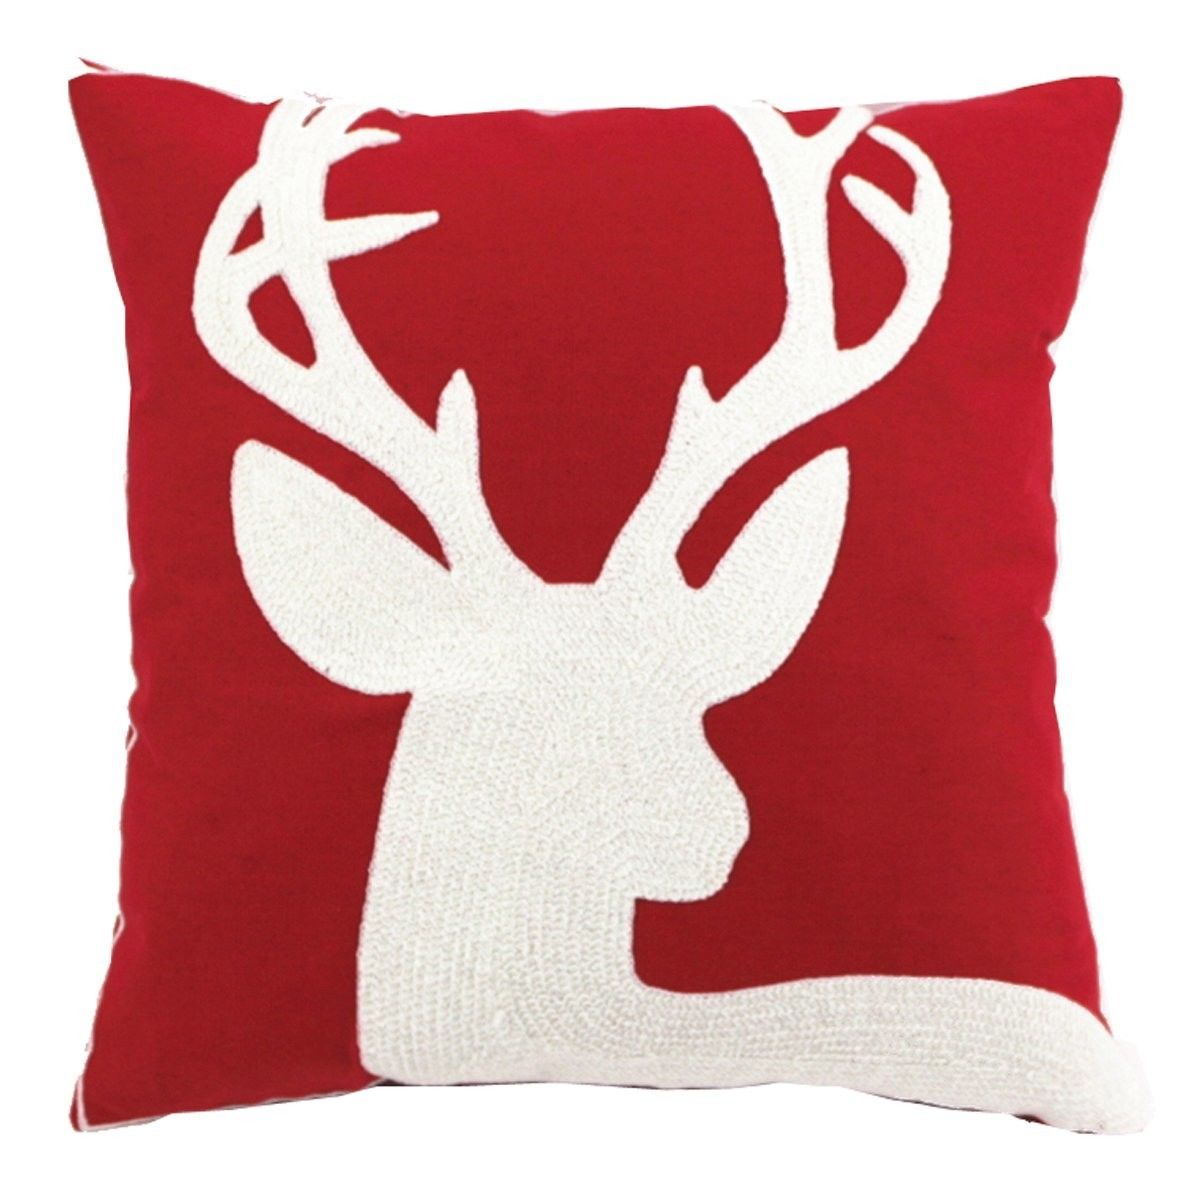 Enipate 45*45cm Christmas Style 100% Cotton Canves Wool Embroidery Christmas Sofa Cushion Cover Pillowcase